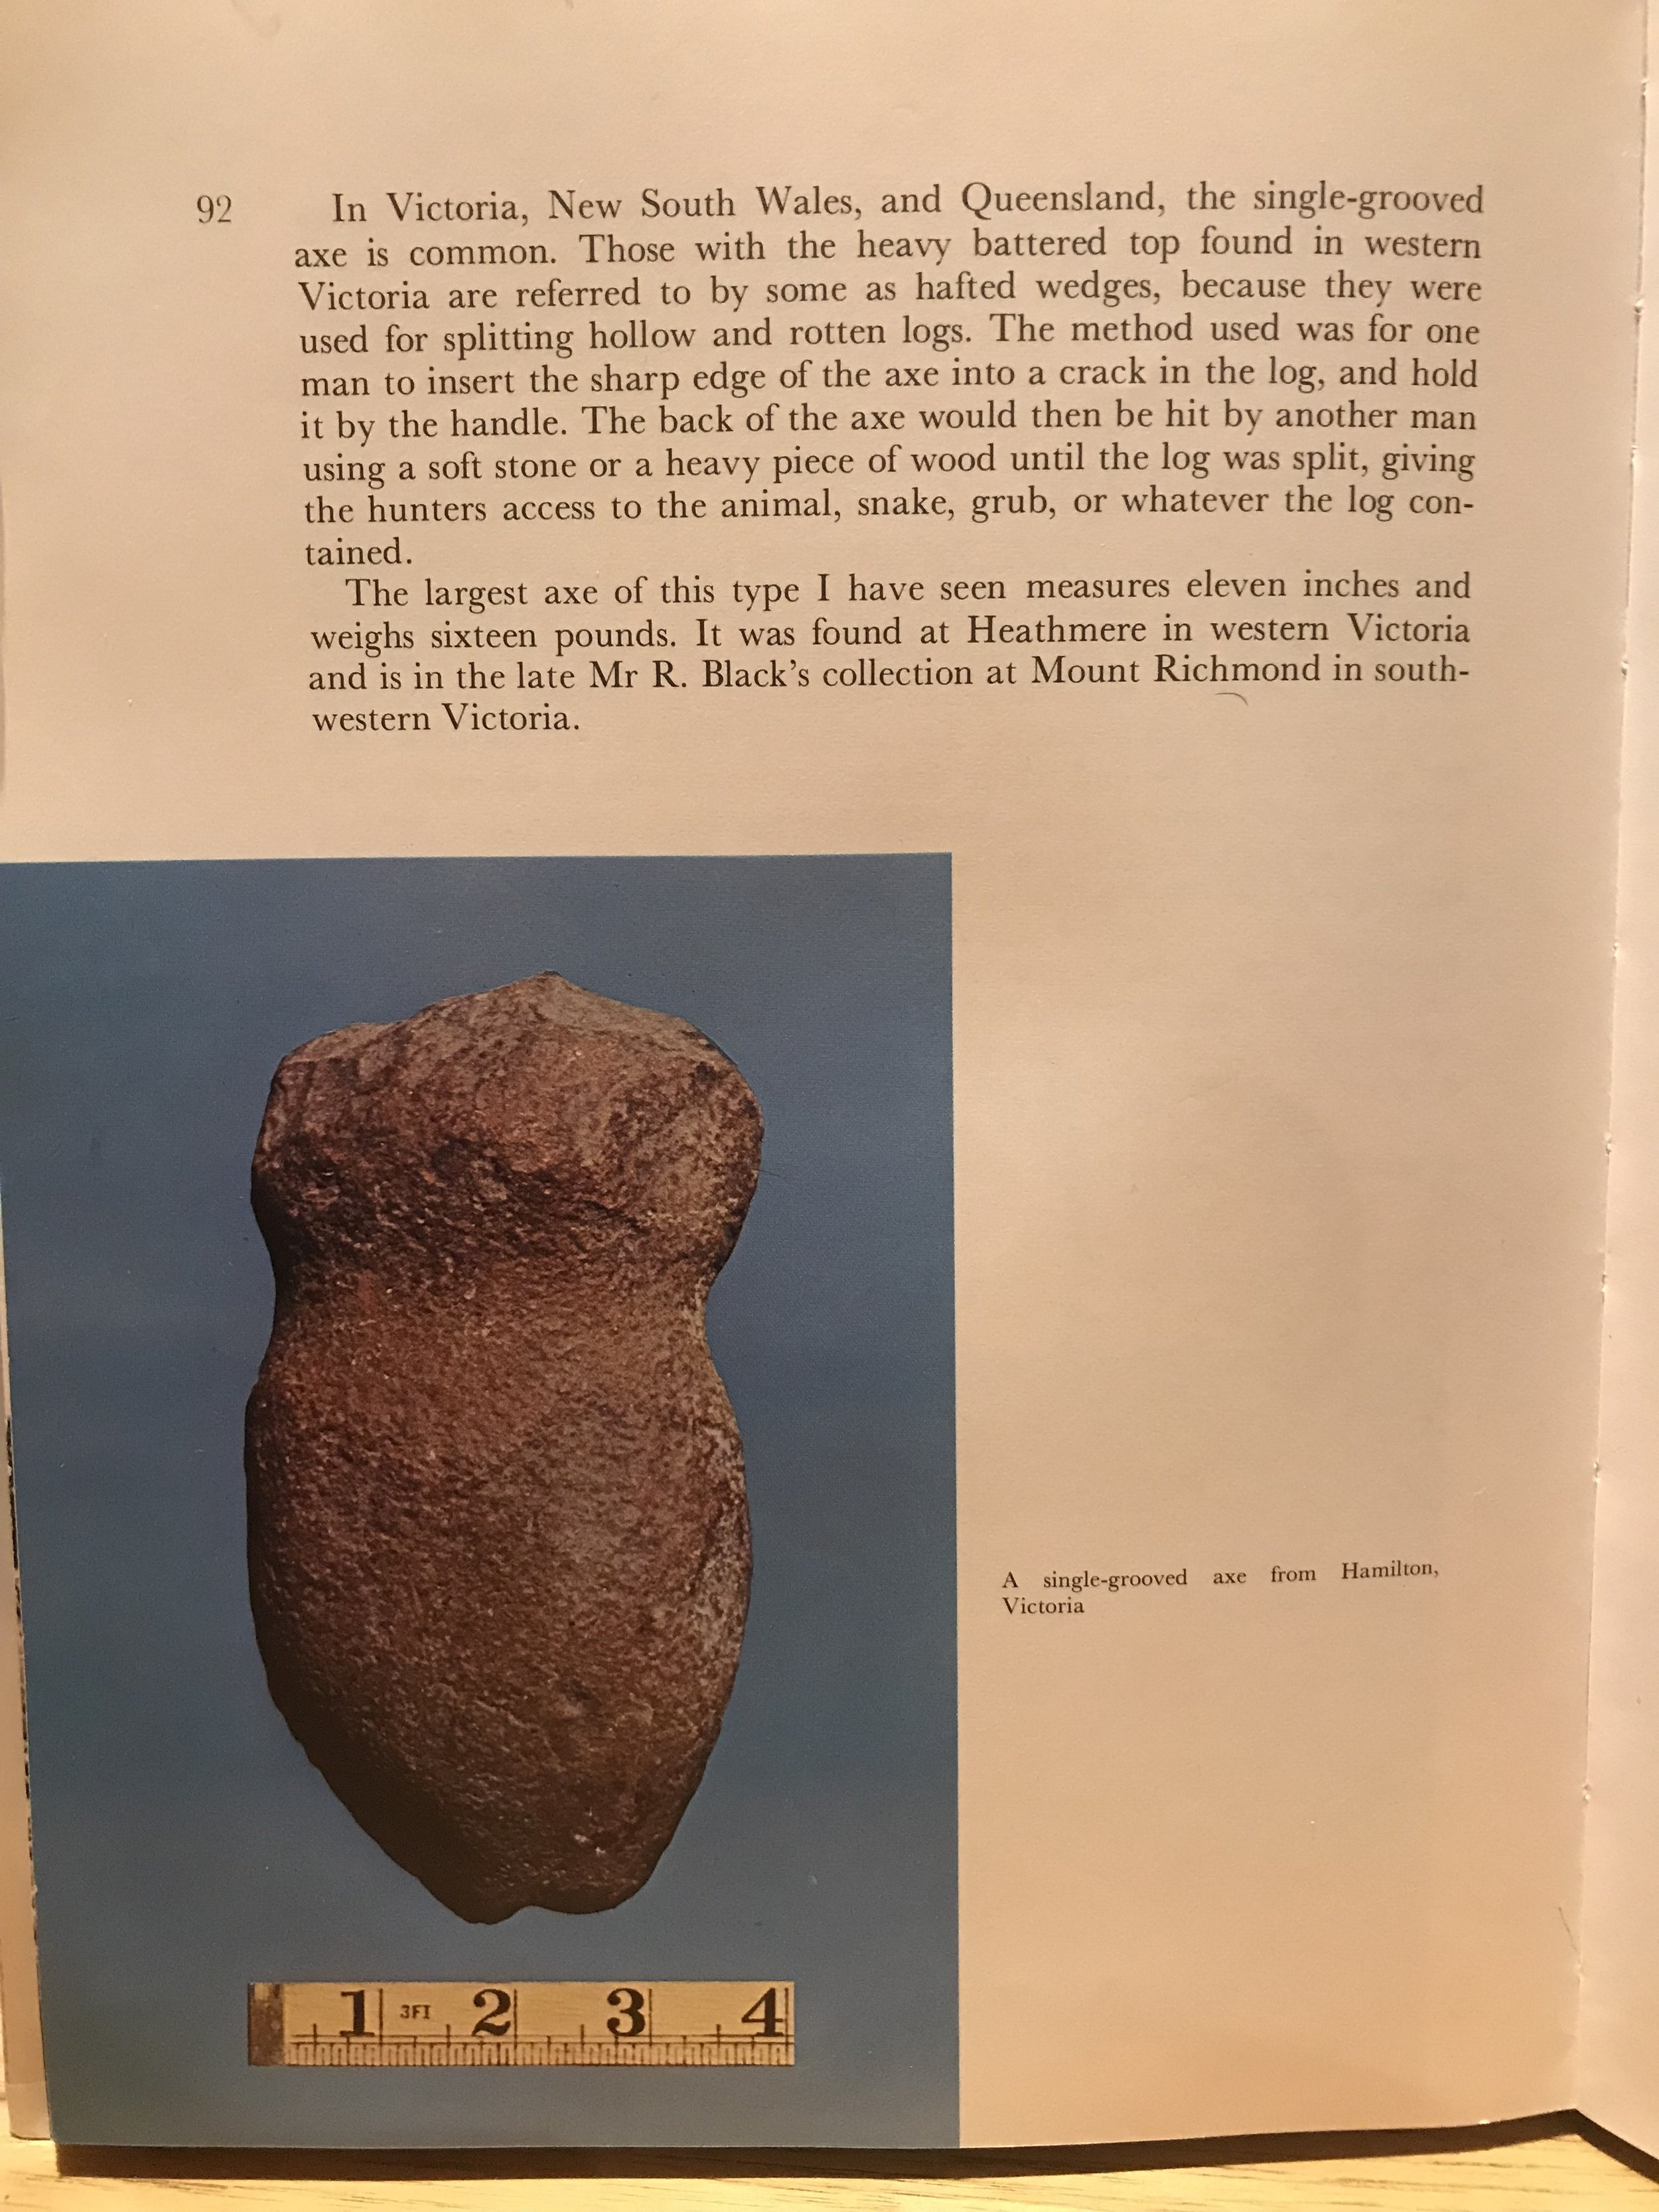 - Just because something looks like a 'hoe' or a 'plough' doesn't mean it is one.Here is an excerpt from an old catalogue describing a stone axe that looks remarkably like a 'hoe' too. Apparently this axe-style could get really big - up to 16 lbs (7kg) which also would be hard to lift above the waist continually. But in fact it was used to split logs and its 'hoe-like' appearance is merely co-incidental.Similarly, just because a Bogan pick could be said to look like a hoe, doesn't mean it was used as one.